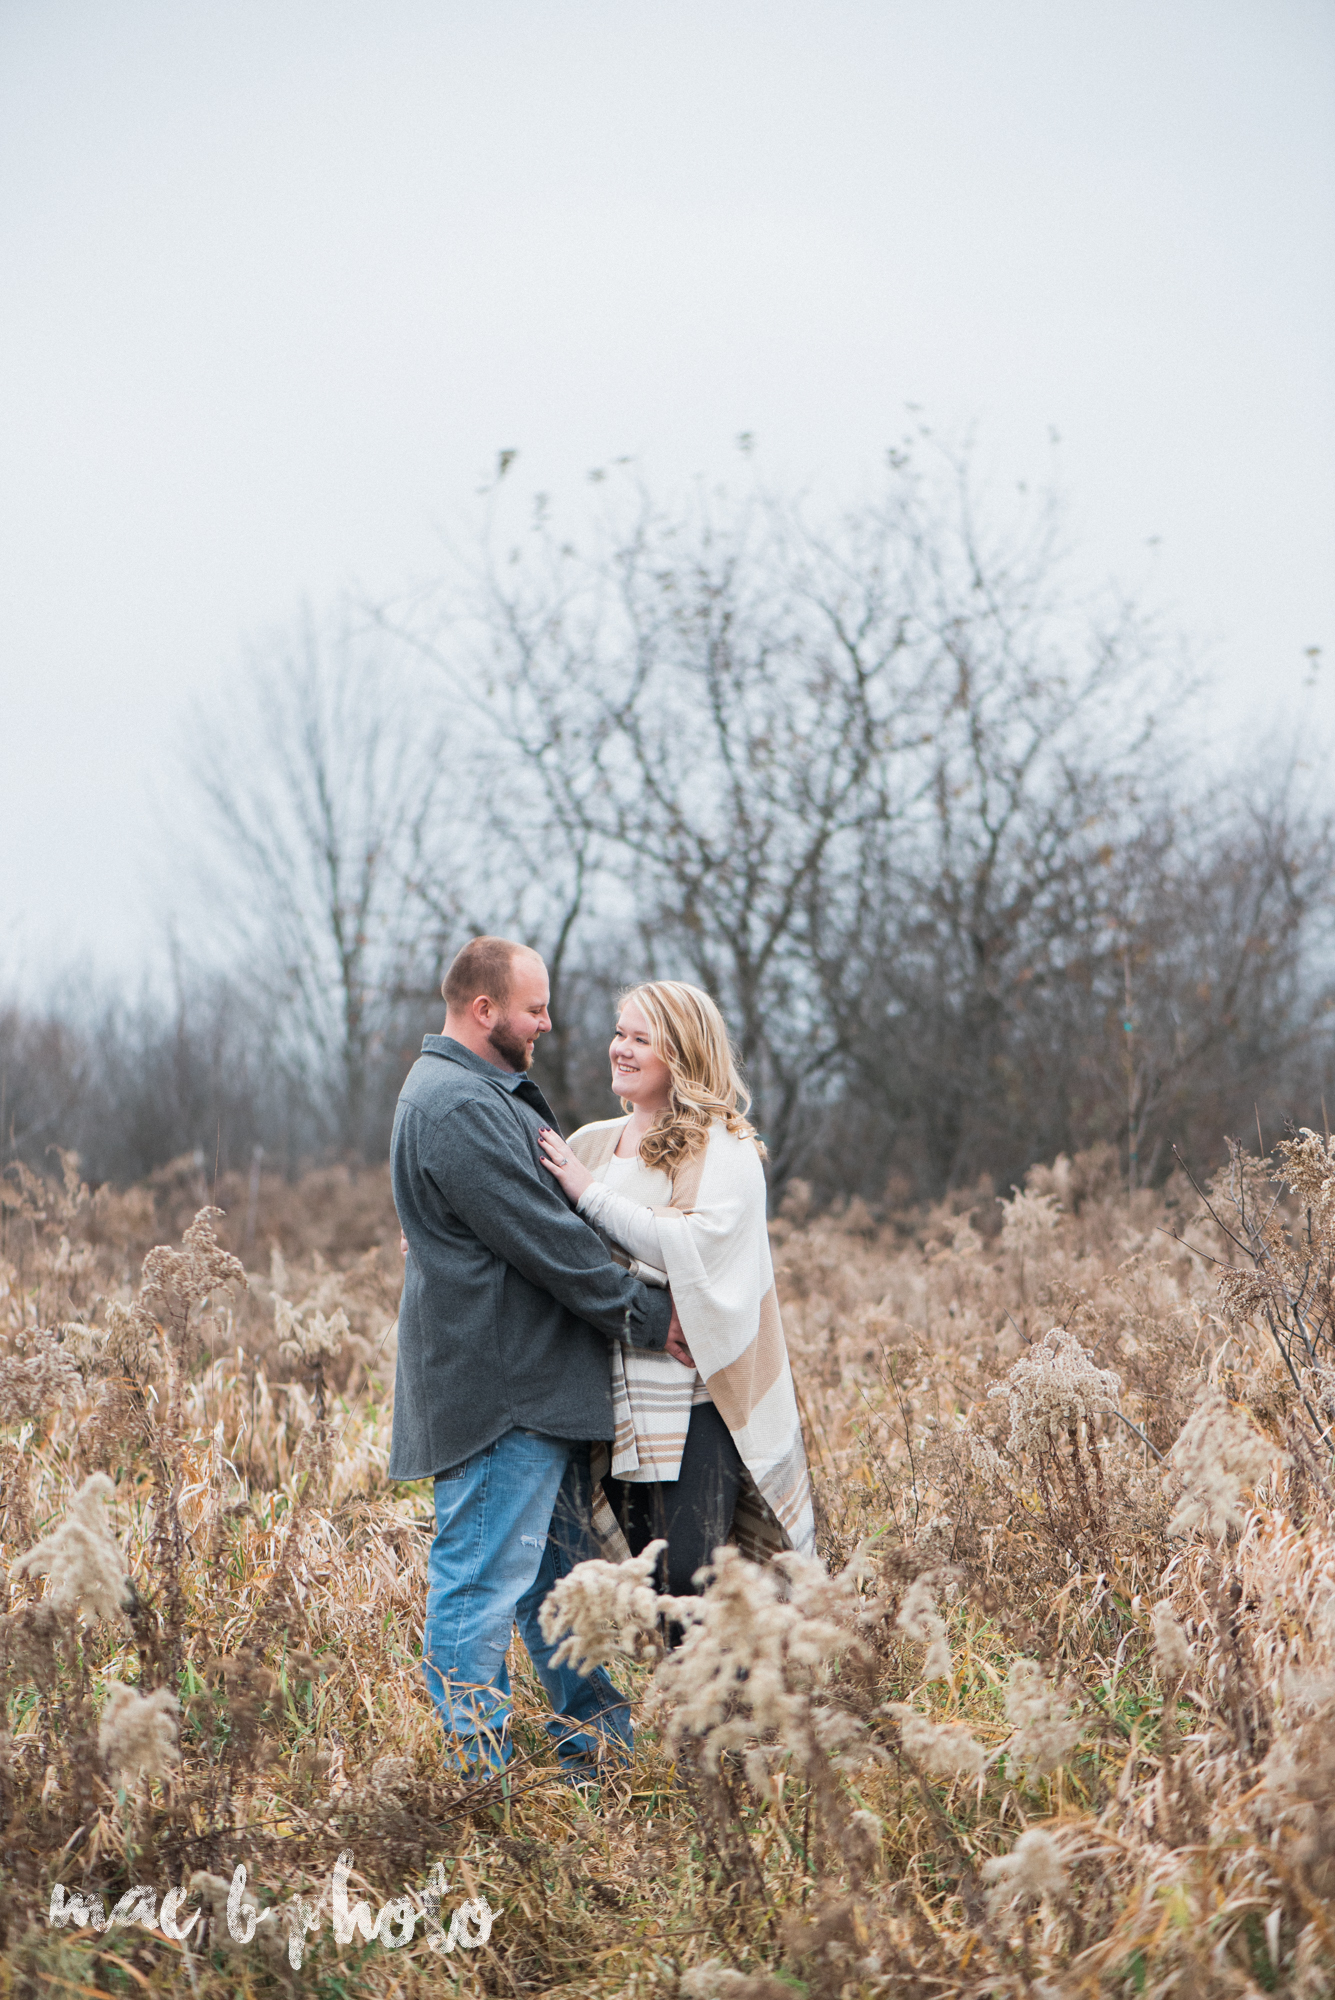 jenna and jay's winter engagement session in mill creek park in youngstown ohio -5.jpg